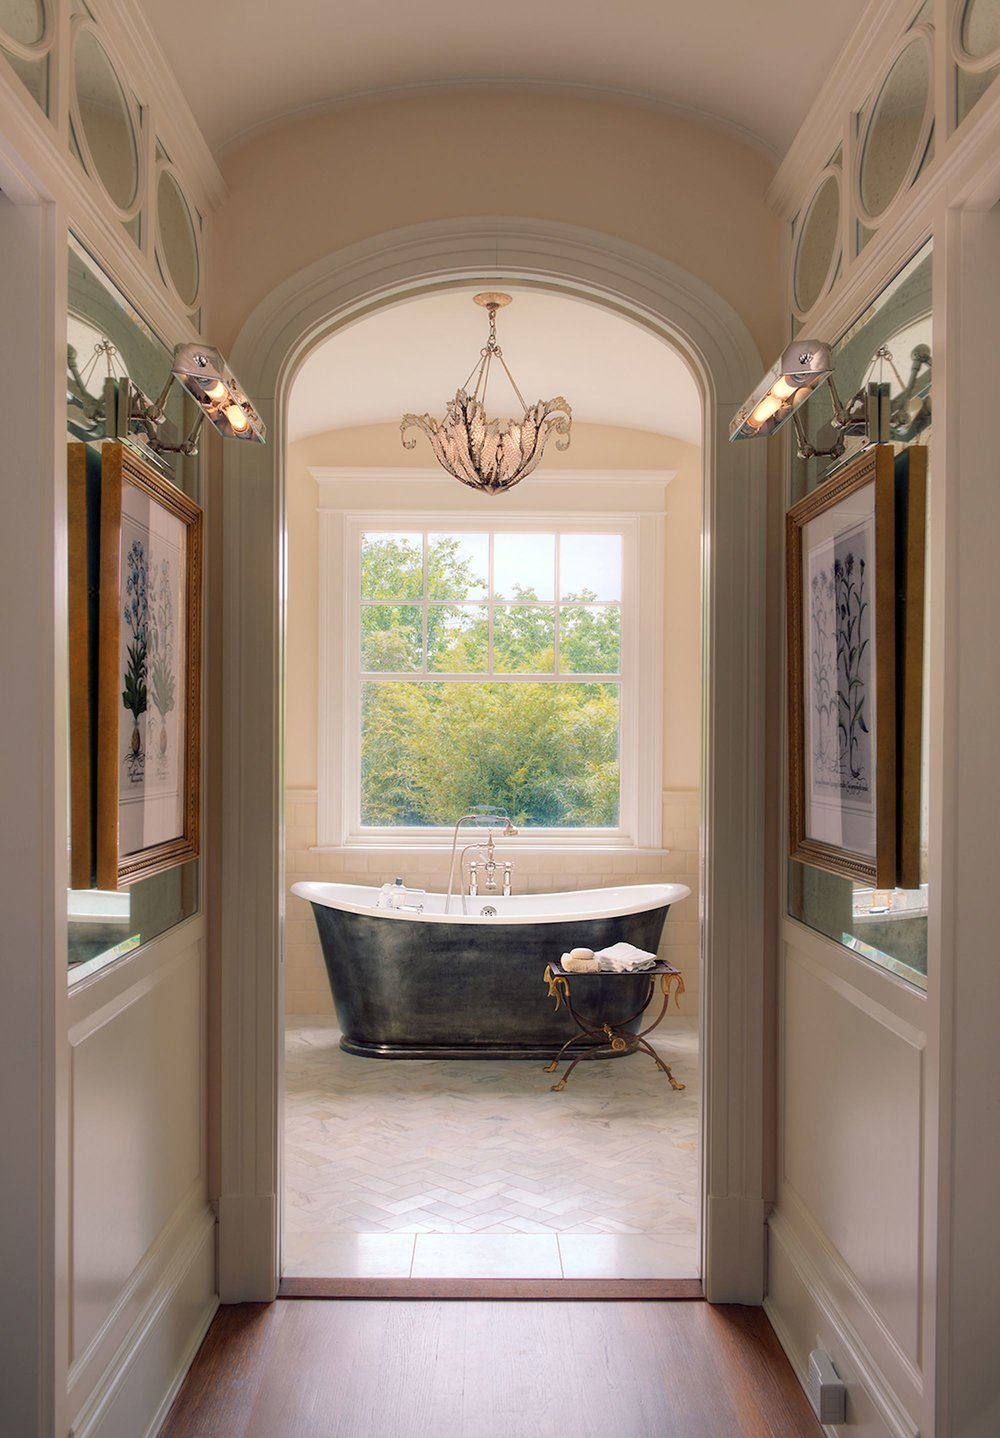 Luxurious Waterworks Soaking Tub